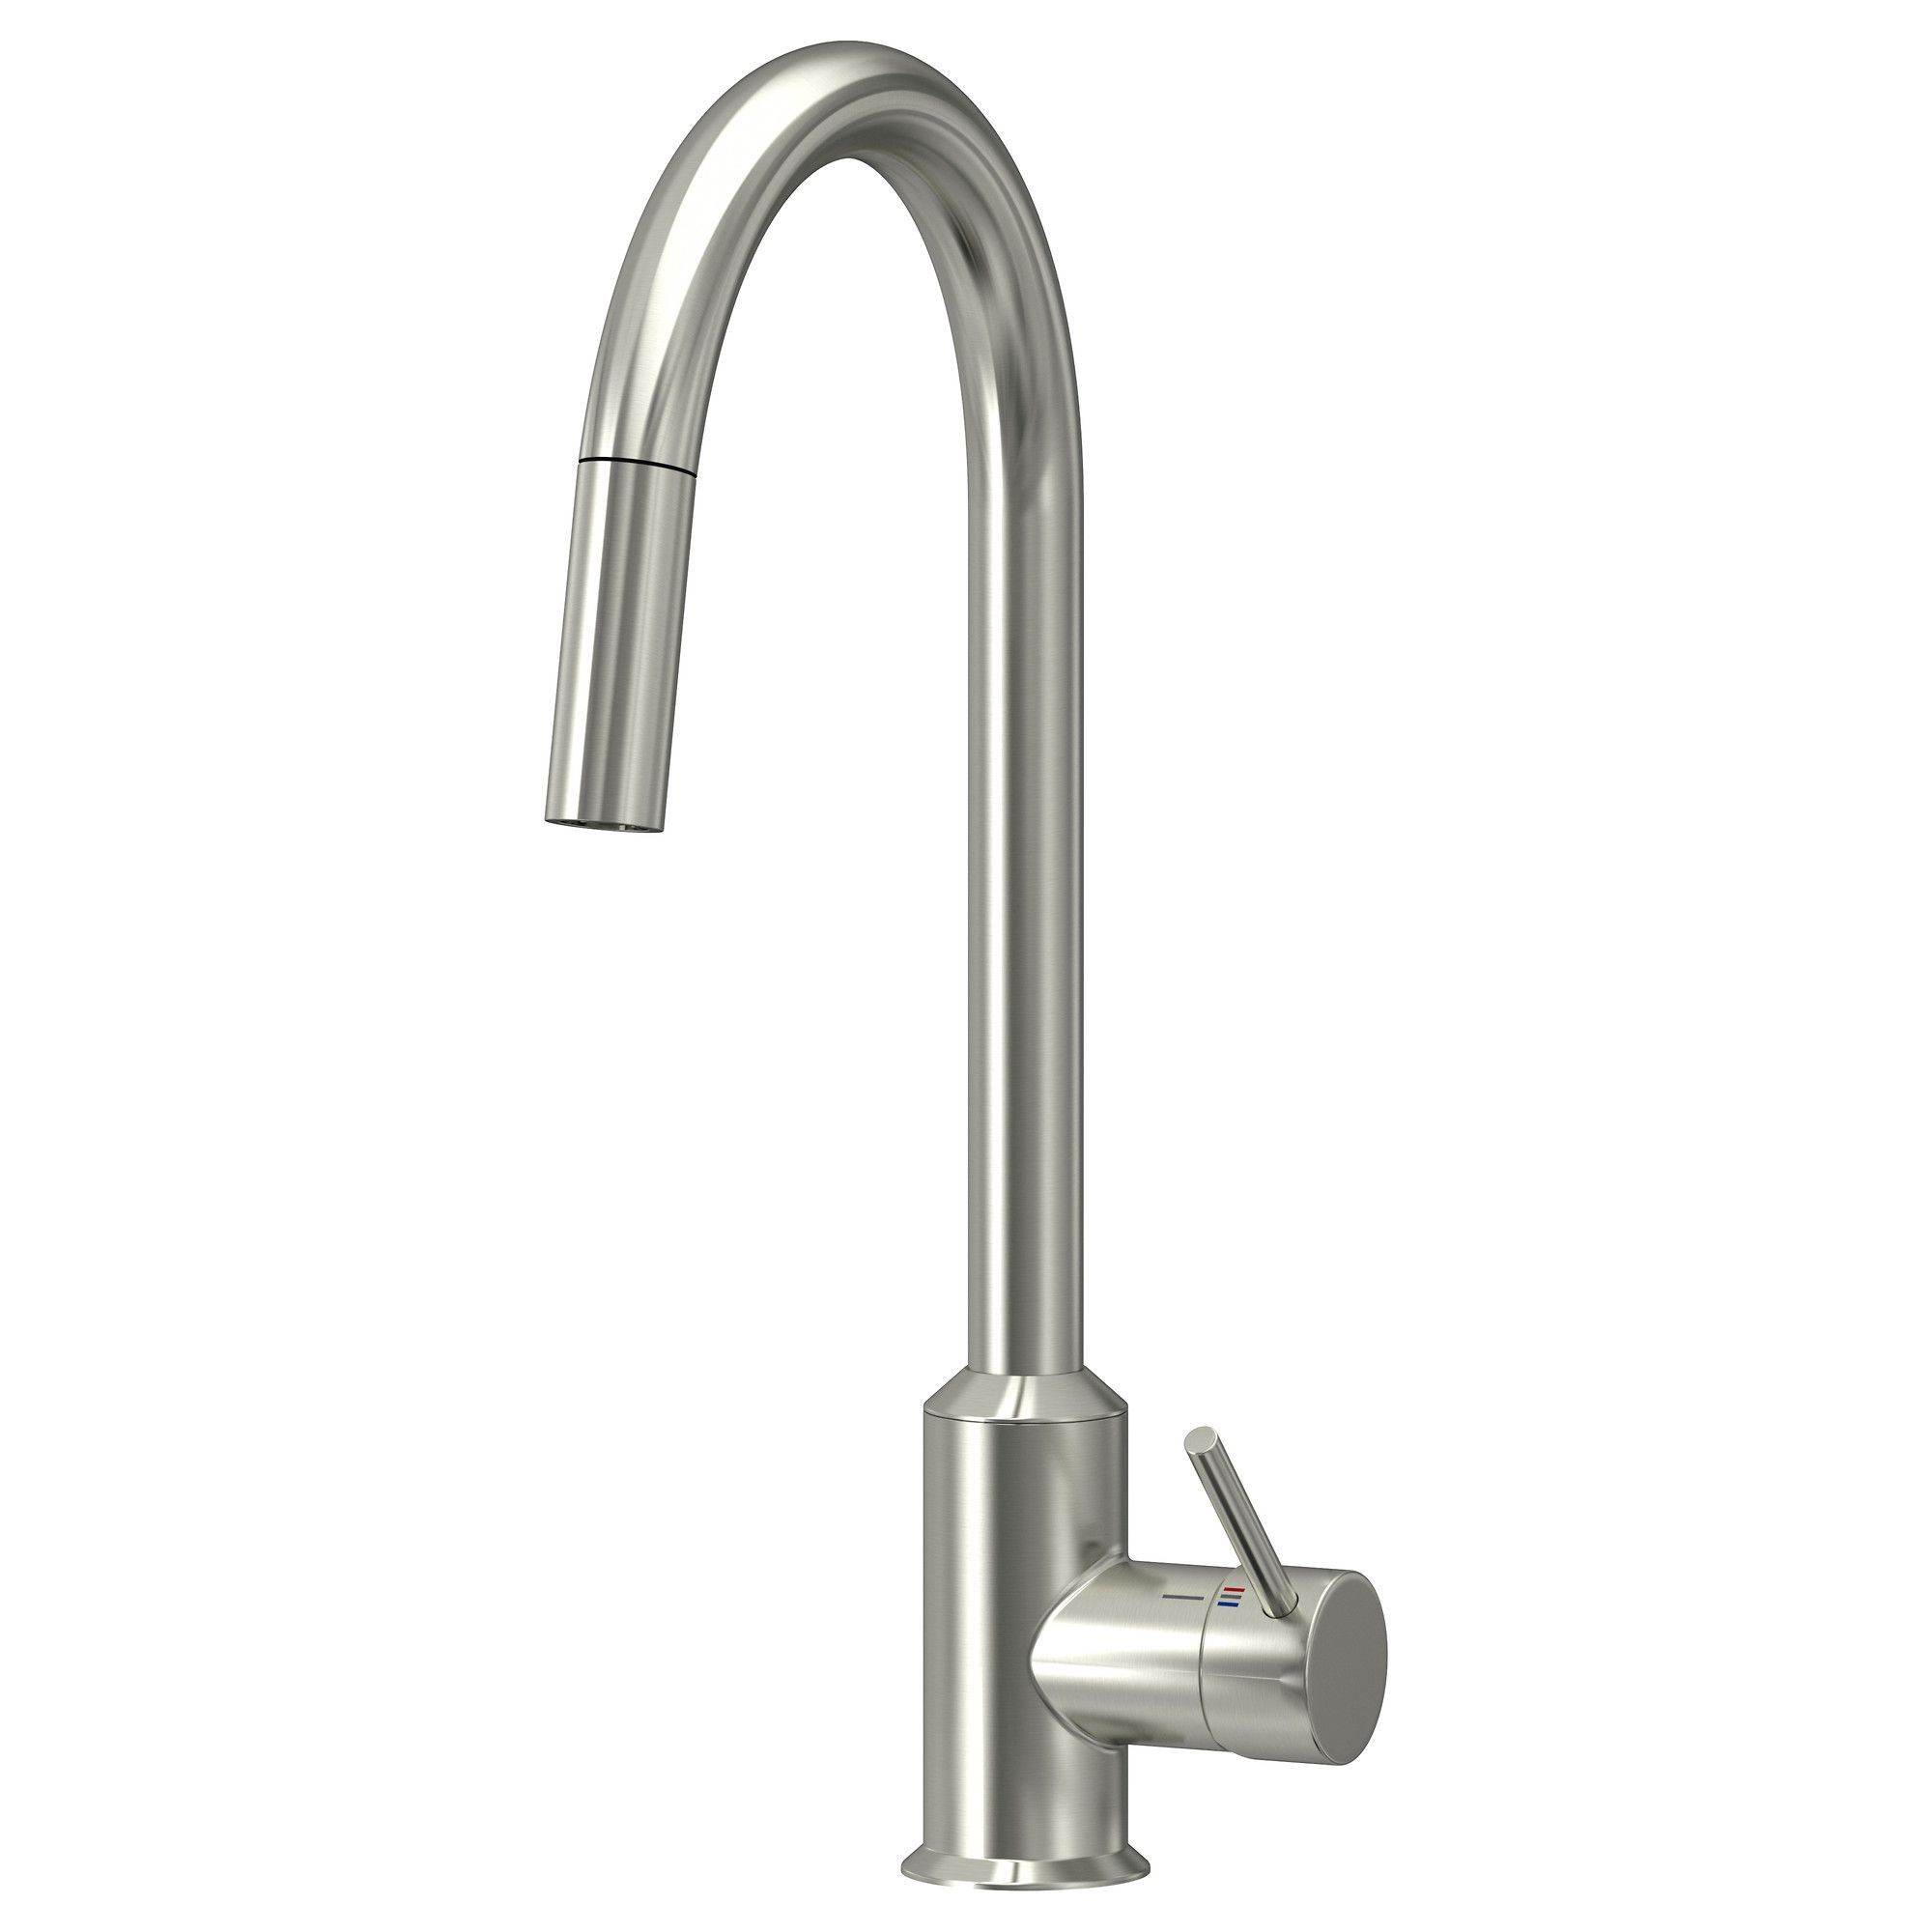 RINGSKÄR Kitchen faucet with pull-out spout, pull-out stainless ...